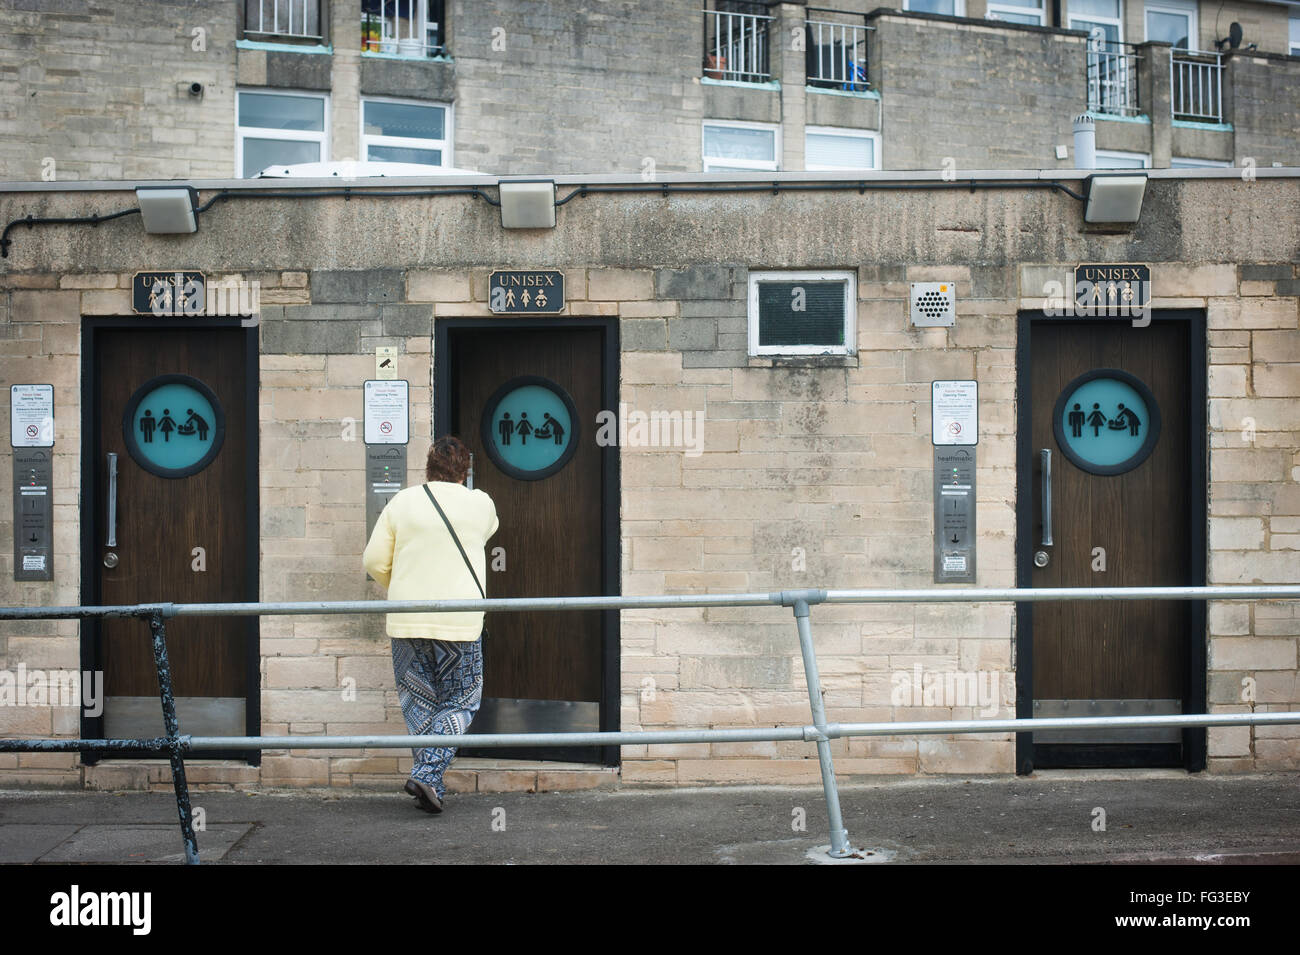 Woman about to use public toilets in Cirencester, Cotswolds - Stock Image